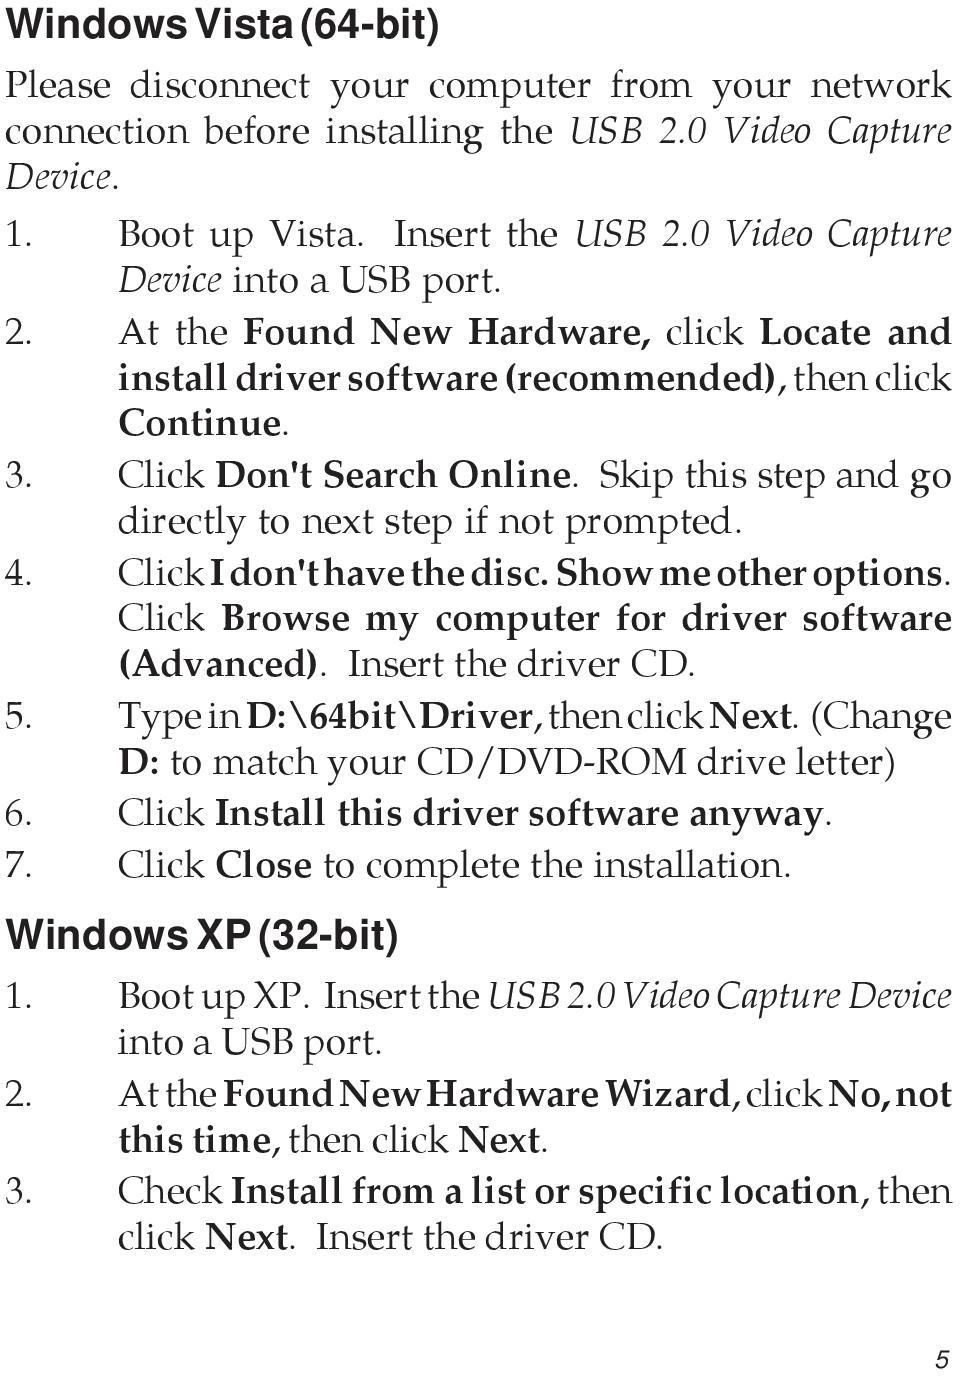 Skip this step and go directly to next step if not prompted. 4. Click I don't have the disc. Show me other options. Click Browse my computer for driver software (Advanced). Insert the driver CD. 5.